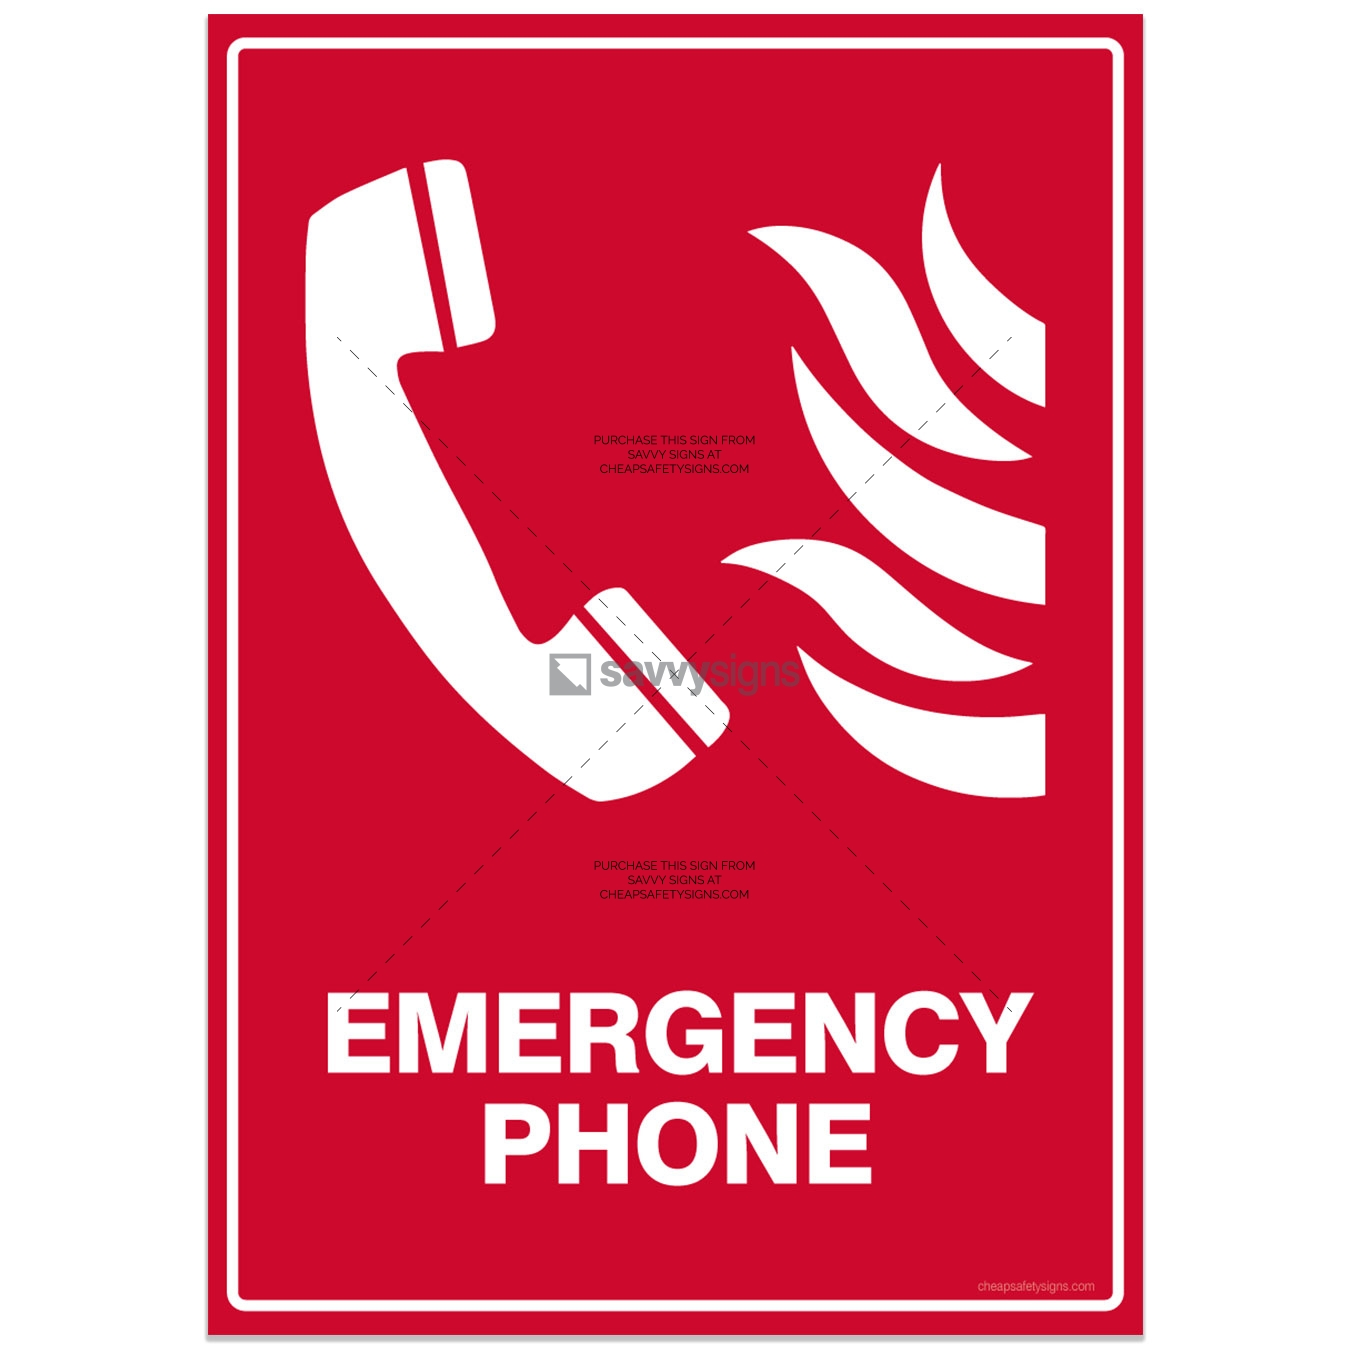 SSFIR3019-FIRE-SAFETY-Workplace-Safety-Signs_Savvy-Signs_v3